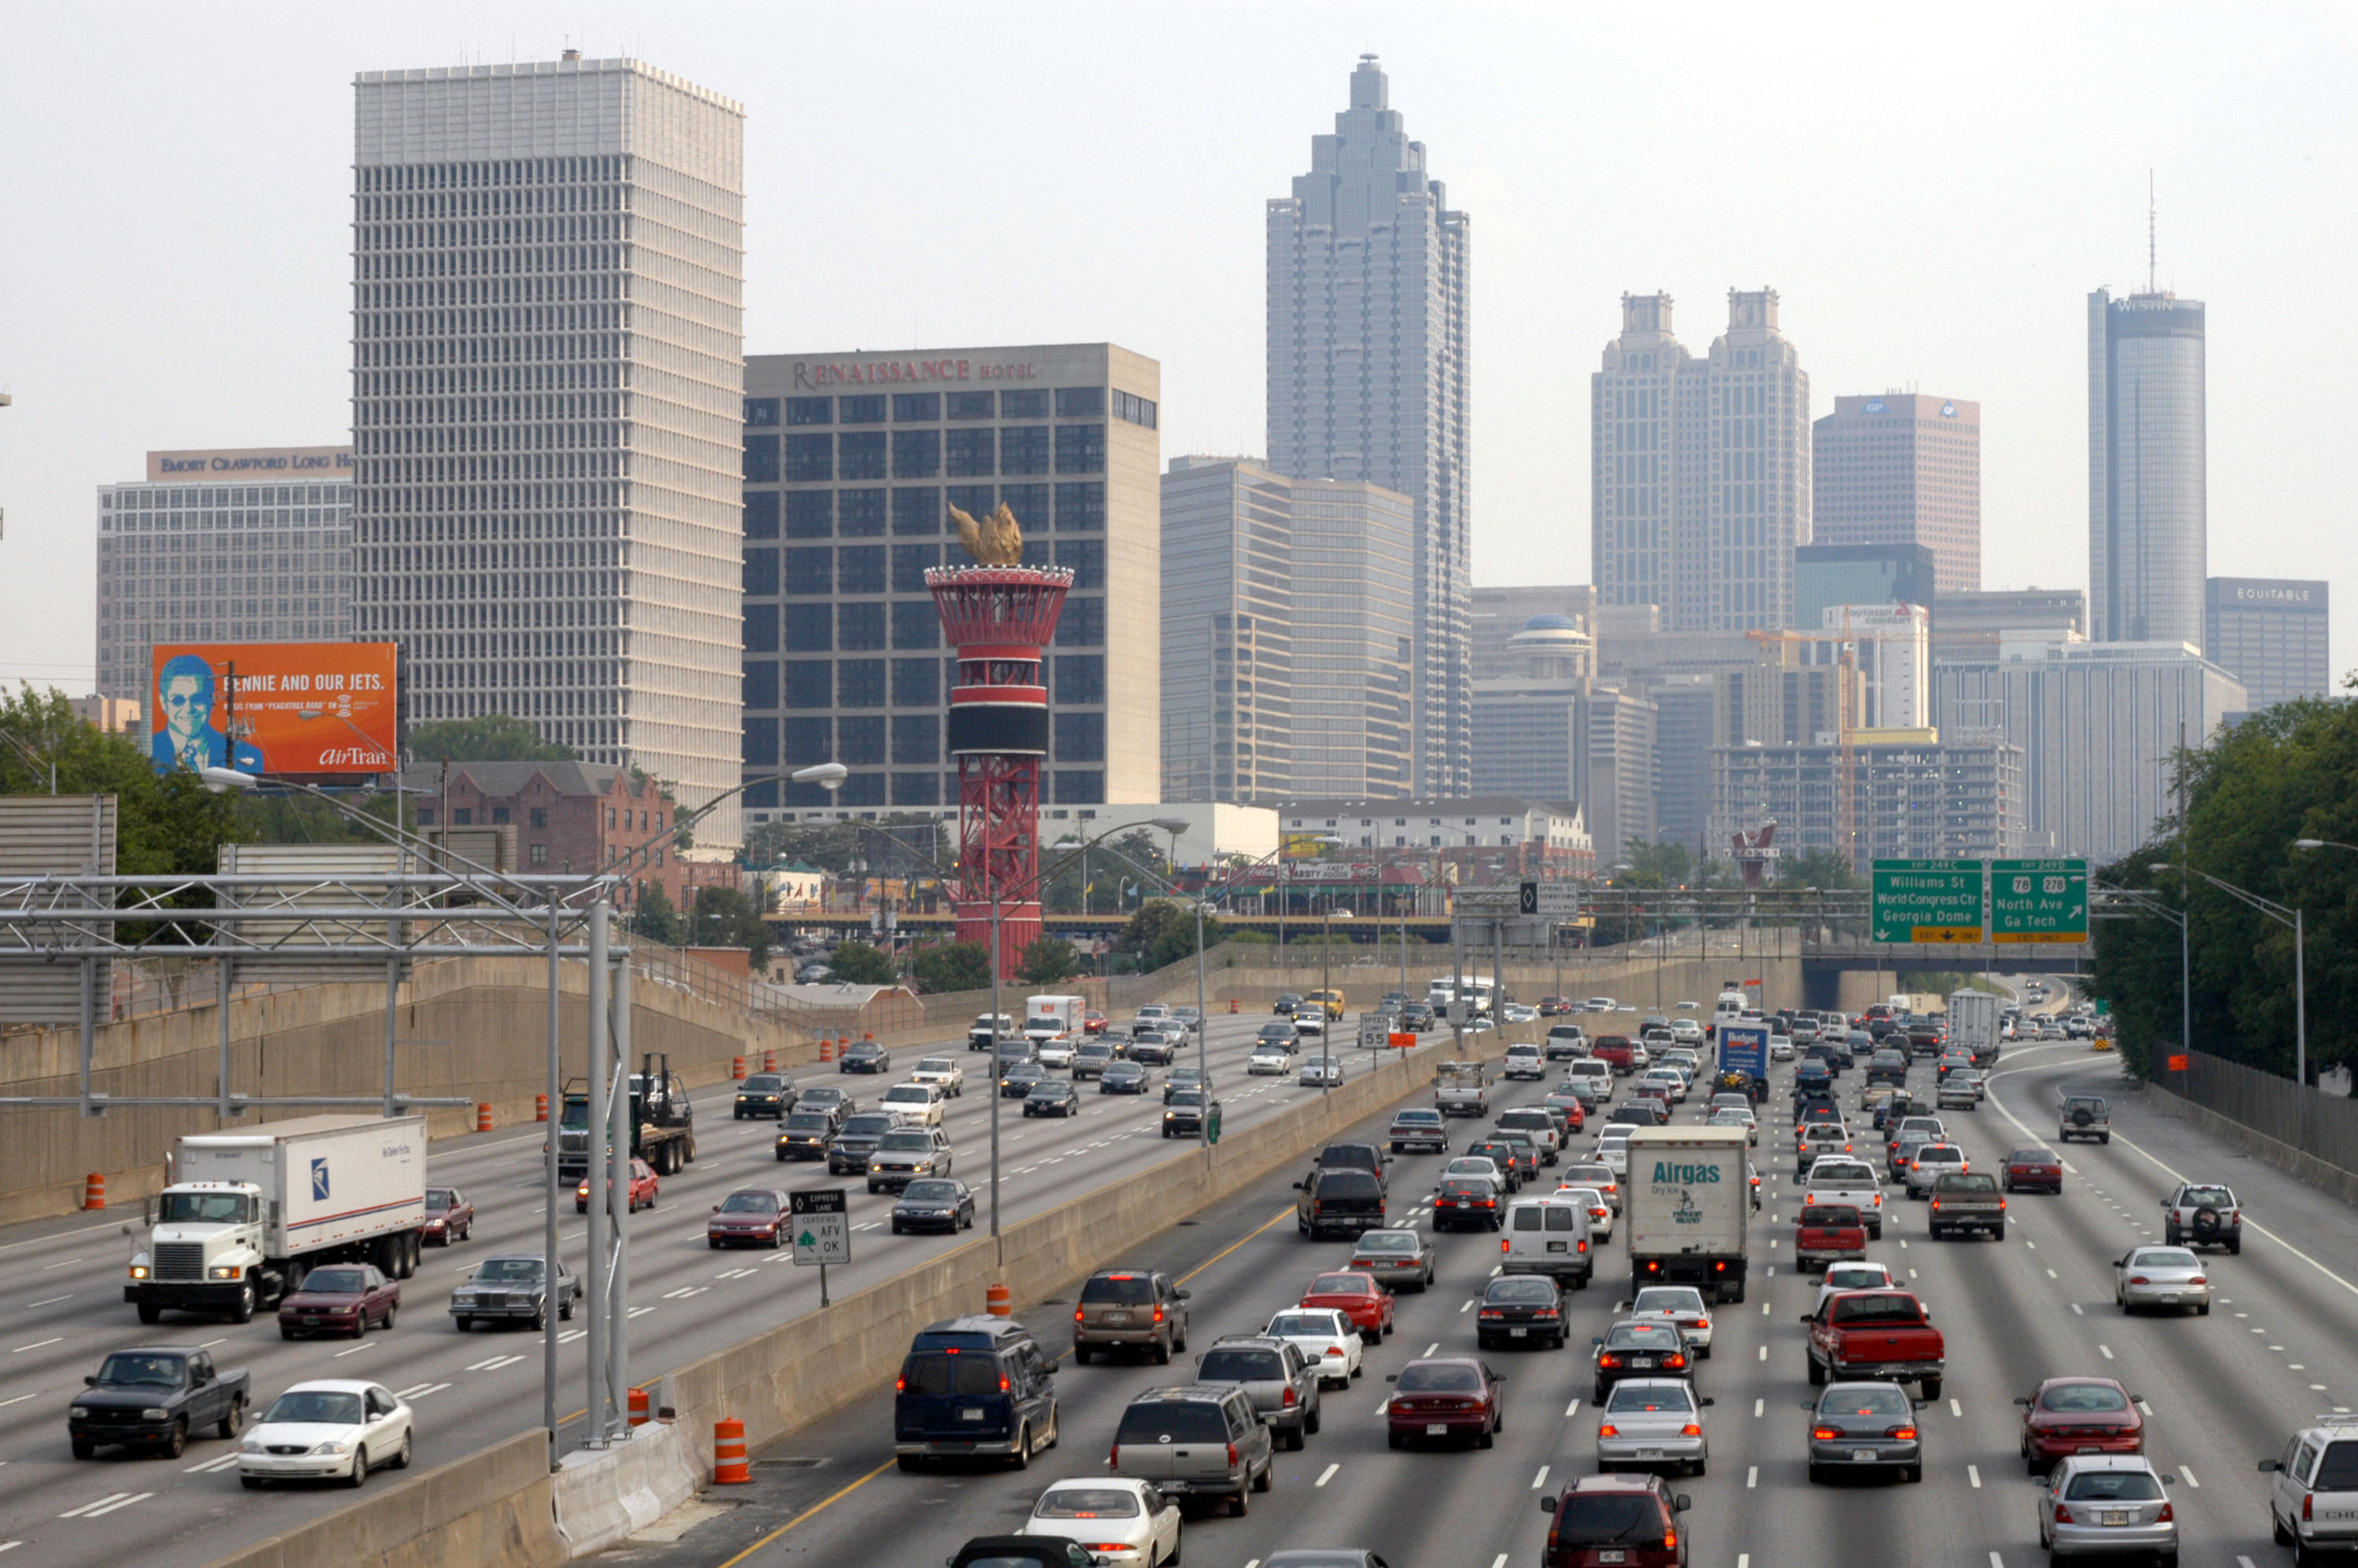 Open Thread: Census shows explosive growth, but is Atlanta really full?